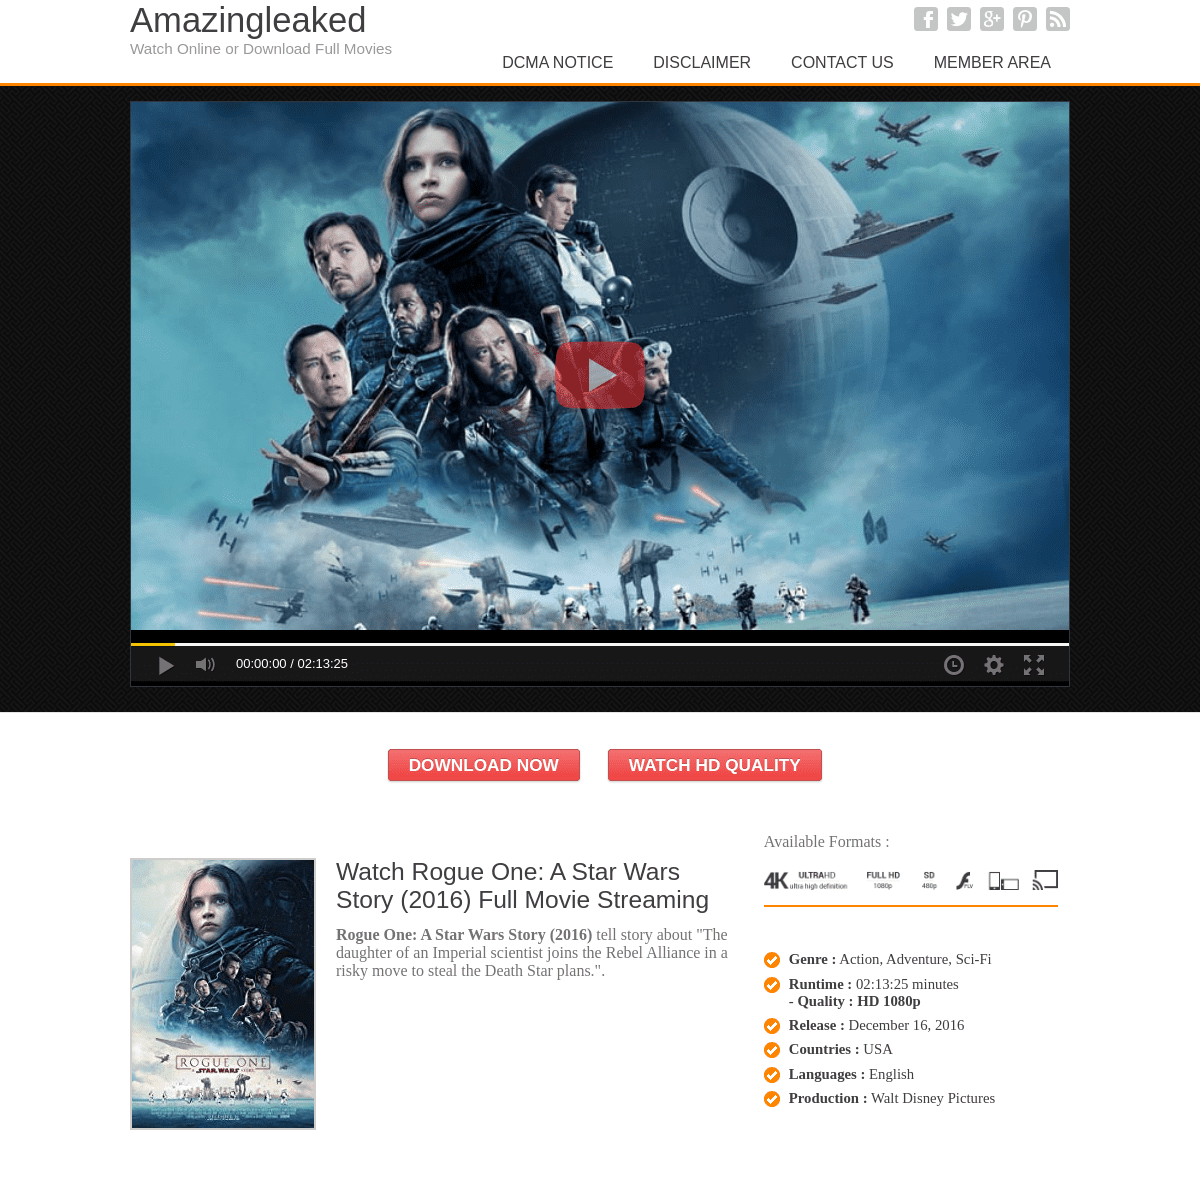 Watch Rogue One- A Star Wars Story (2016) - Full Movie Streaming